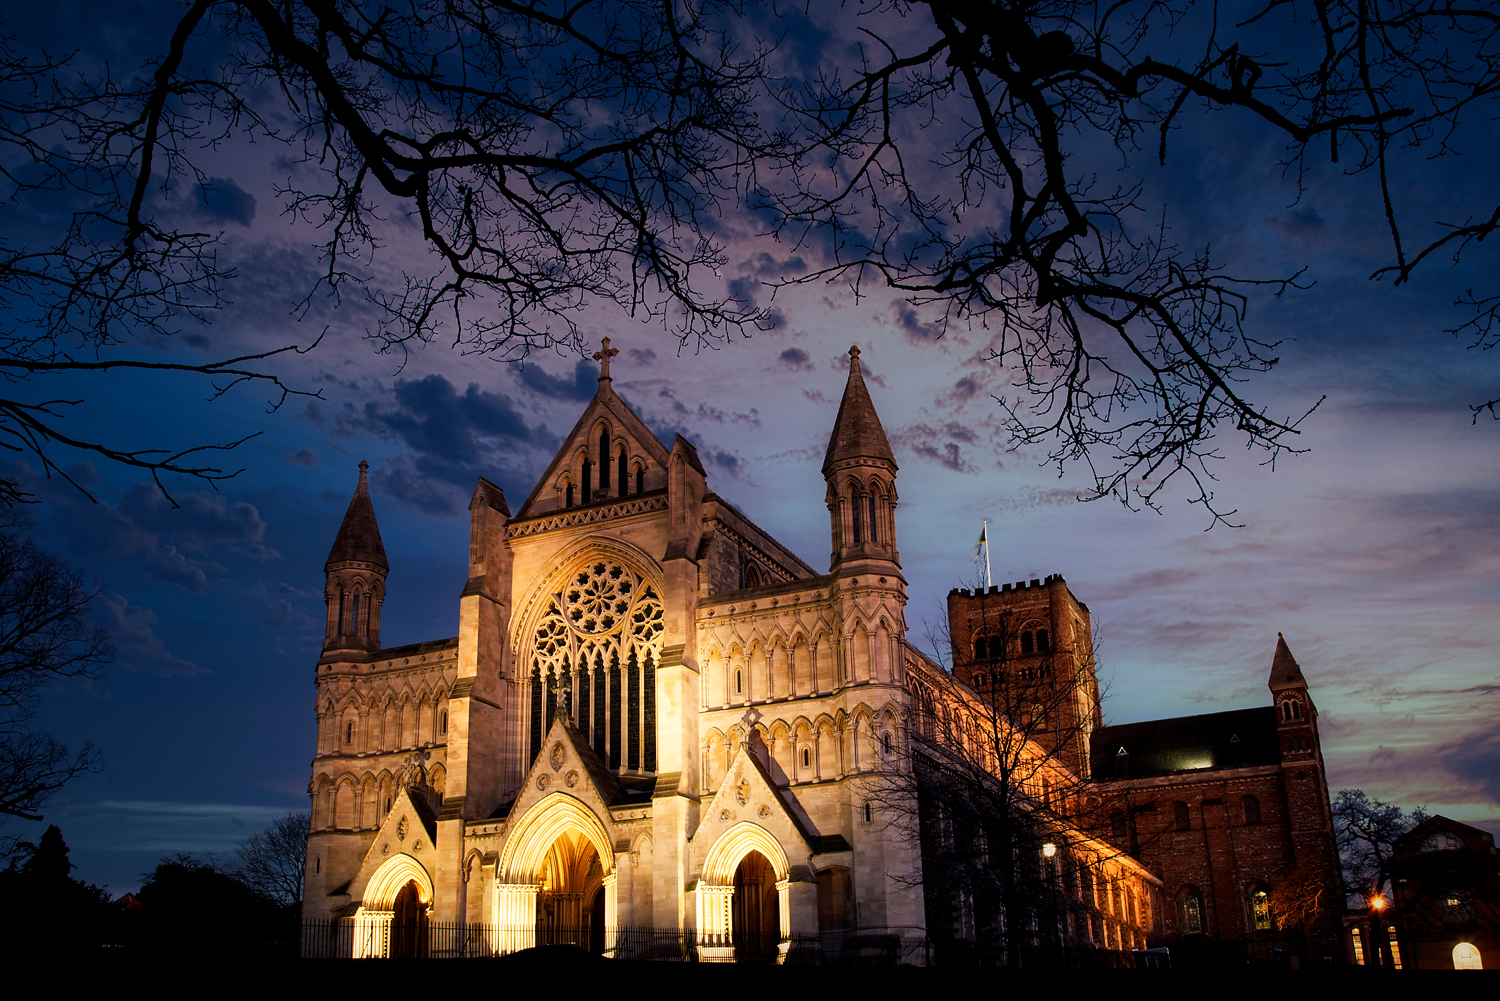 St Albans Cathedral at night